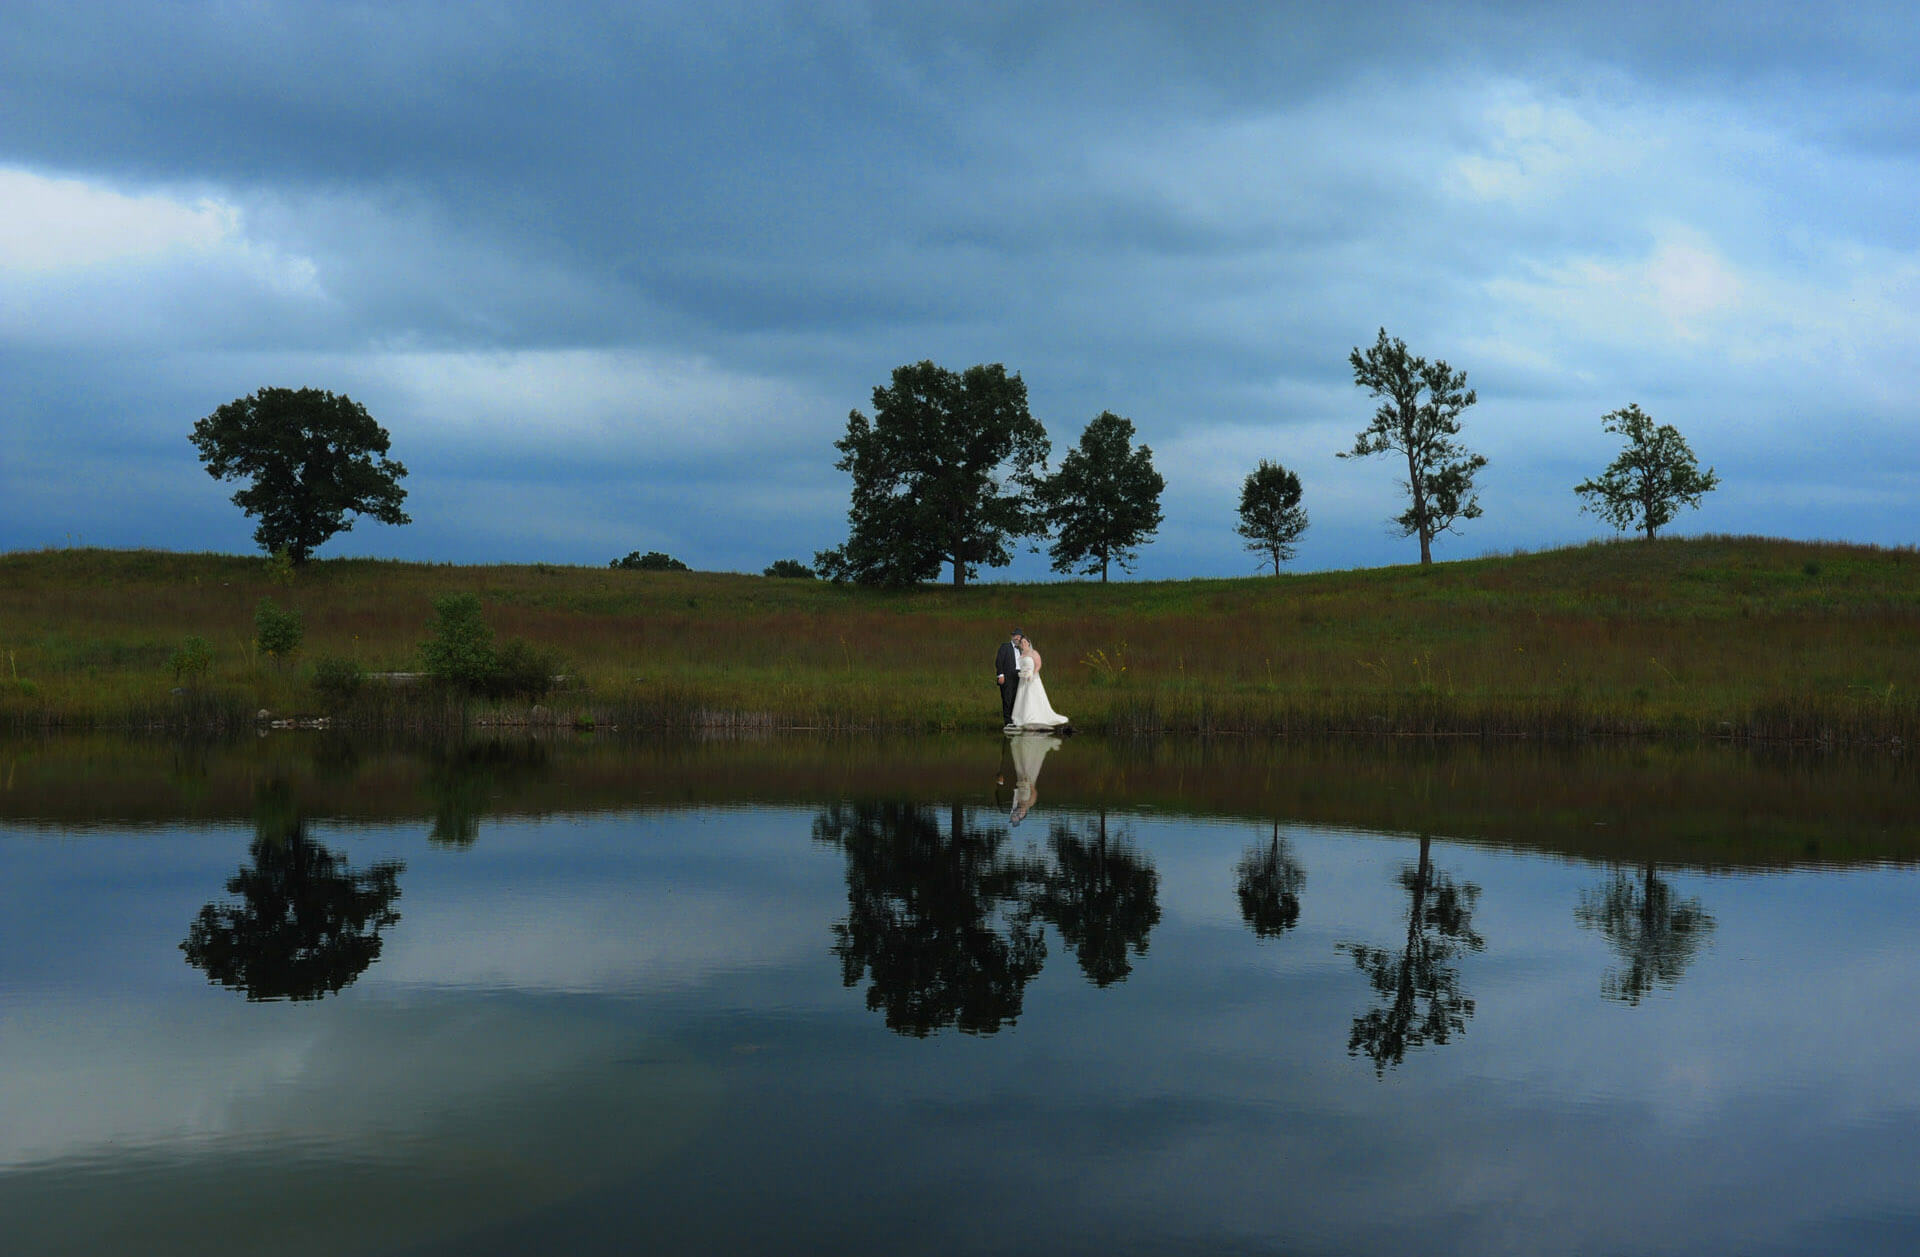 The bride and groom are reflected in the pond at Indian Springs Metropark in  Michigan.